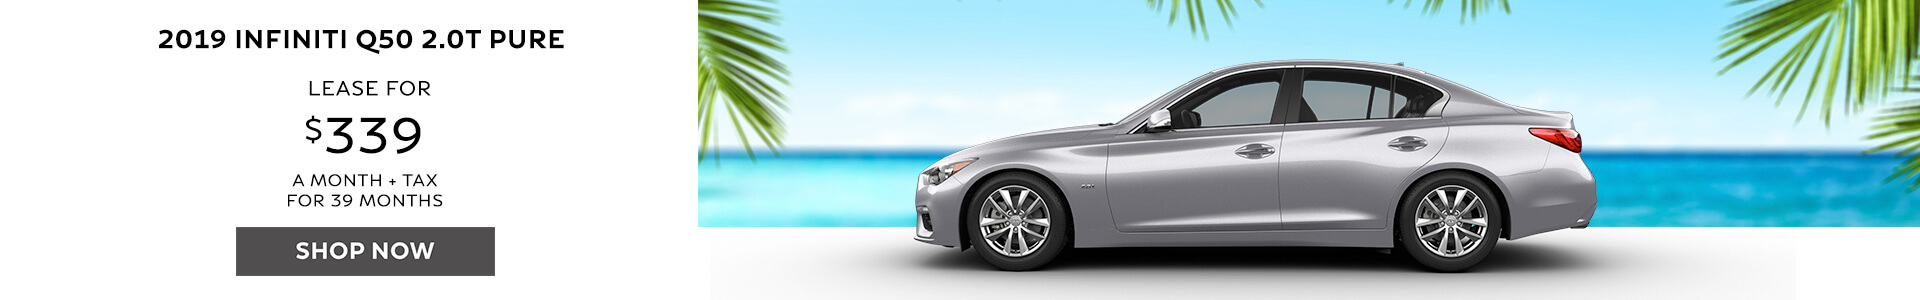 Q50 Lease for $339